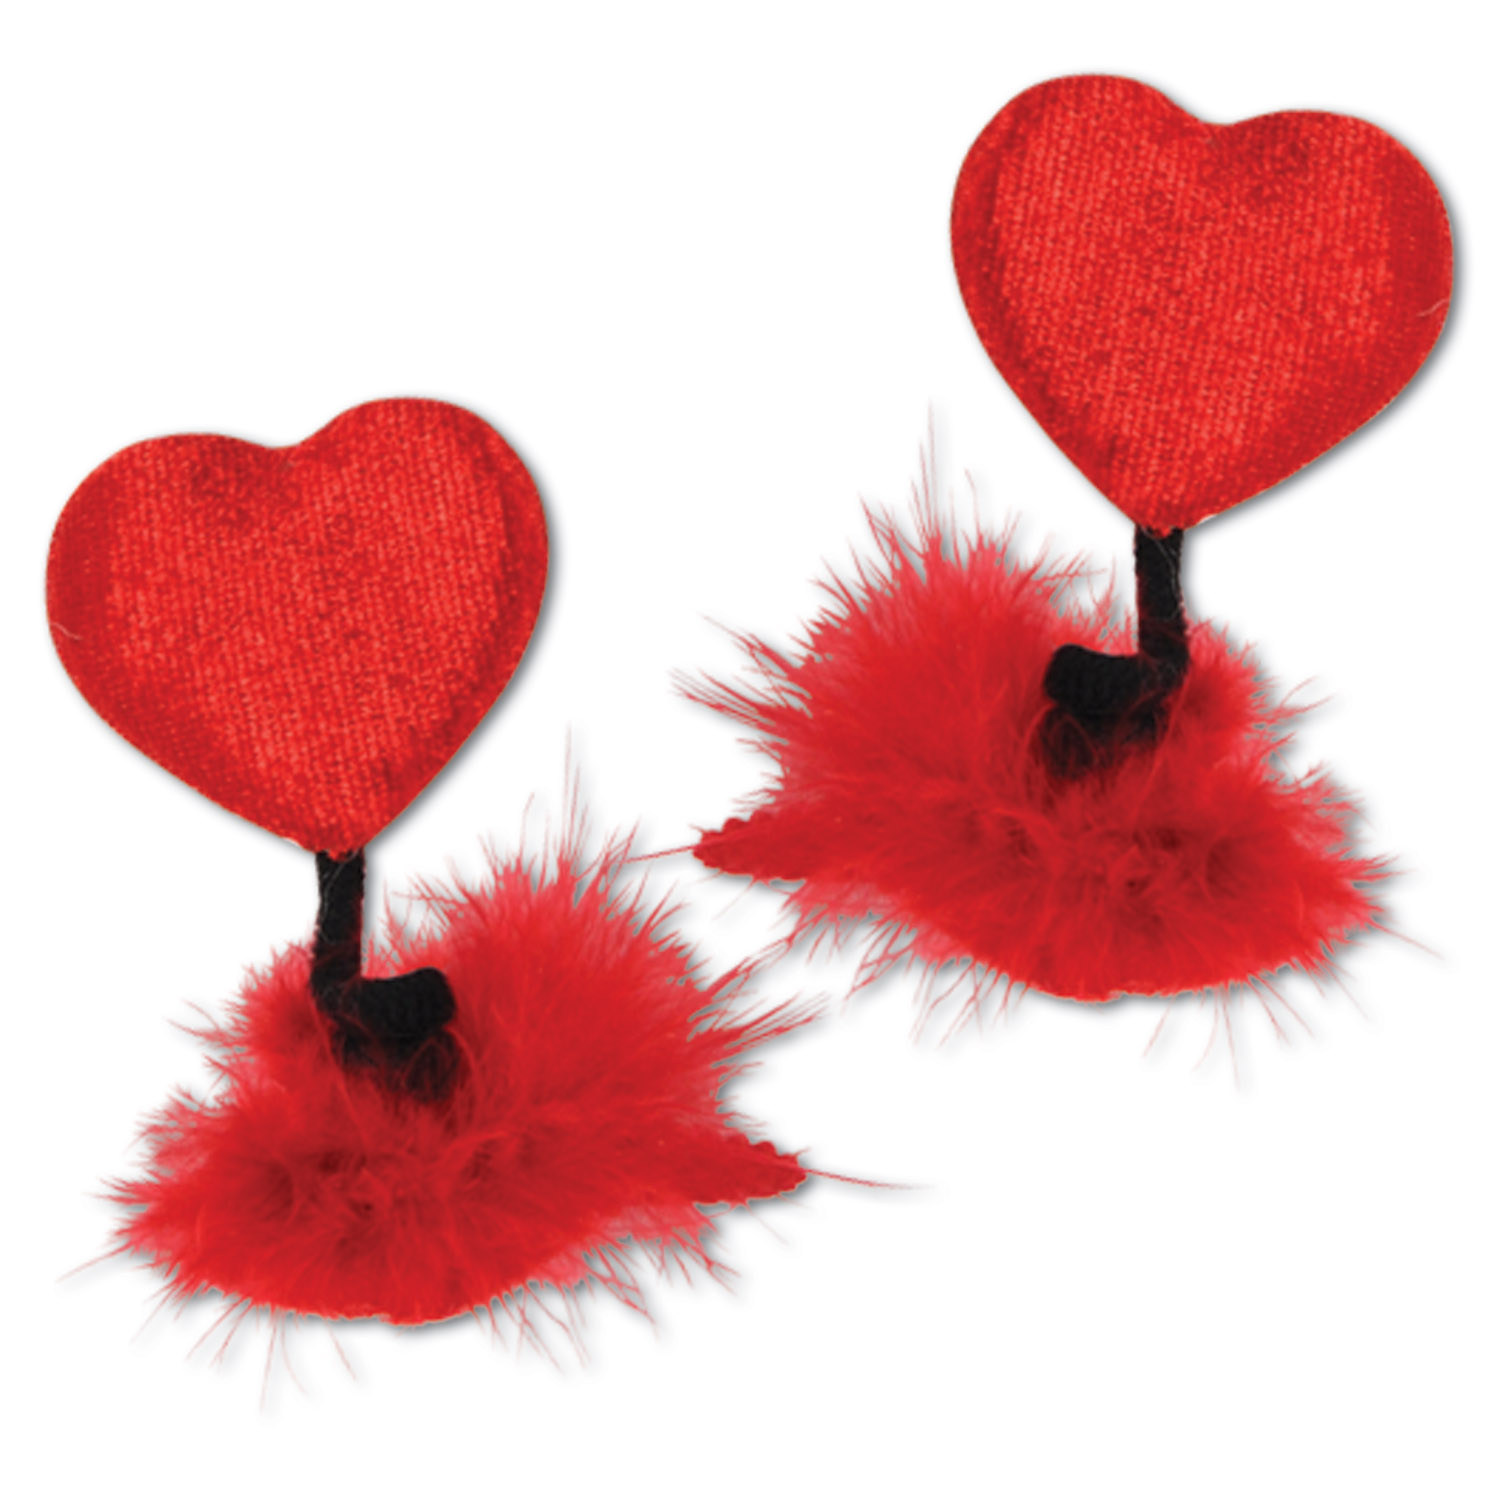 Heart Hair Clips (Pack of 12) Heart Hair Clips, party favor, valentines day, party supplies, wholesale, inexpensive, bulk